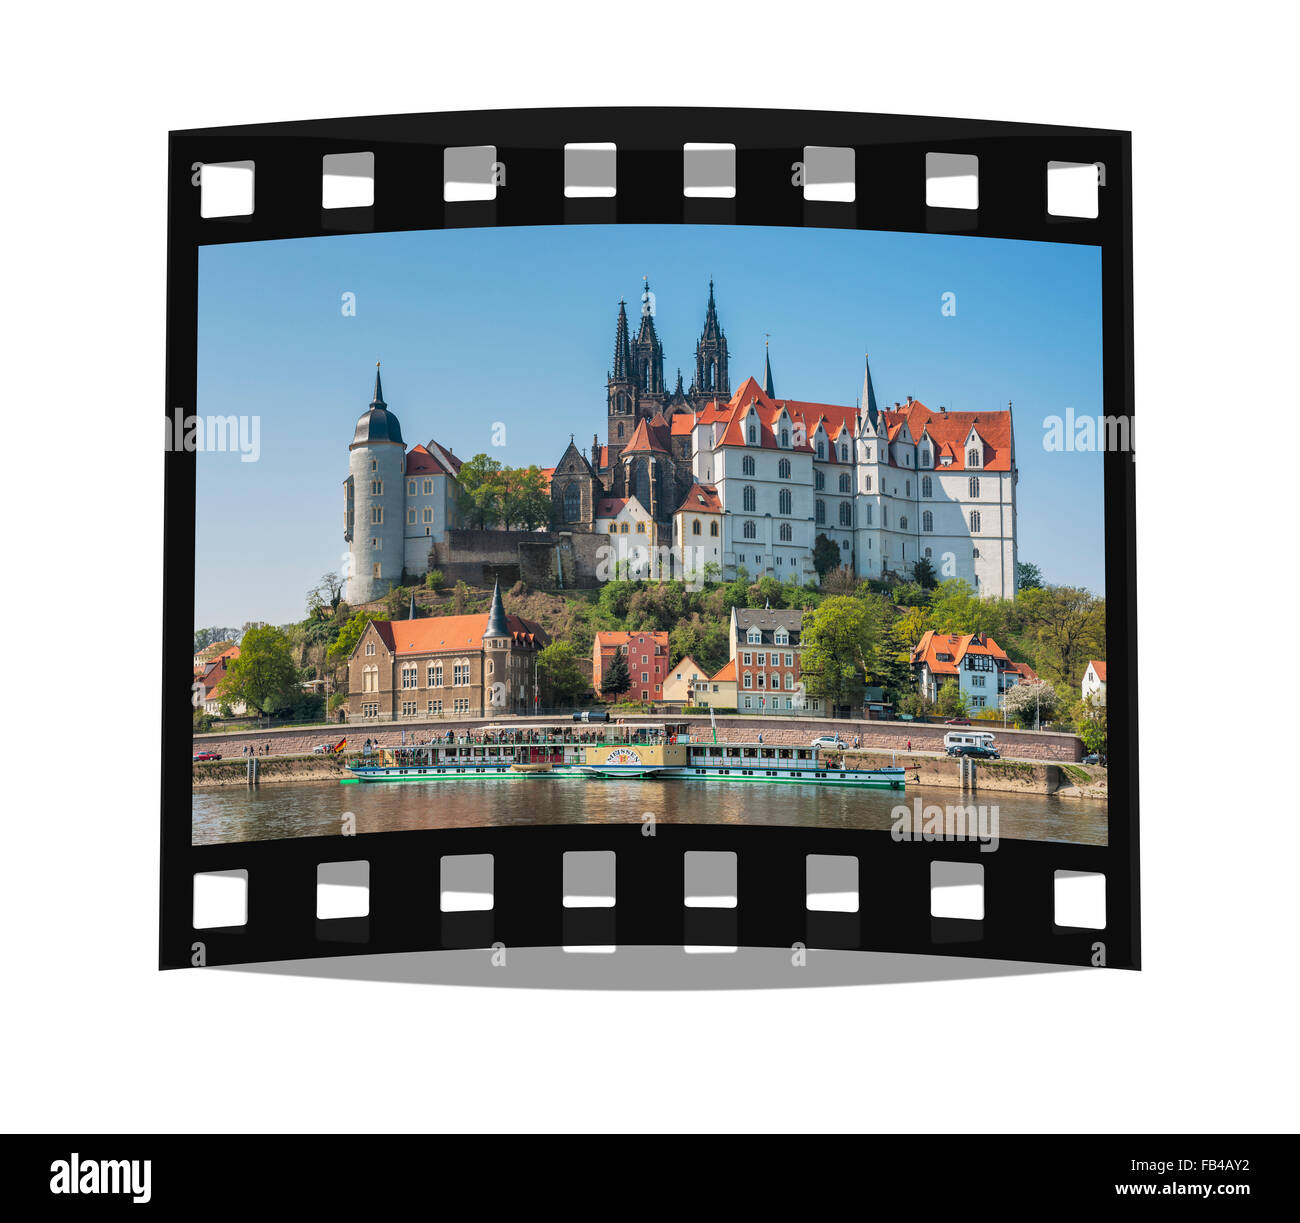 View over the Elbe river to Albrechtsburg Castle, Meissen, Saxony, Germany, Europe - Stock Image